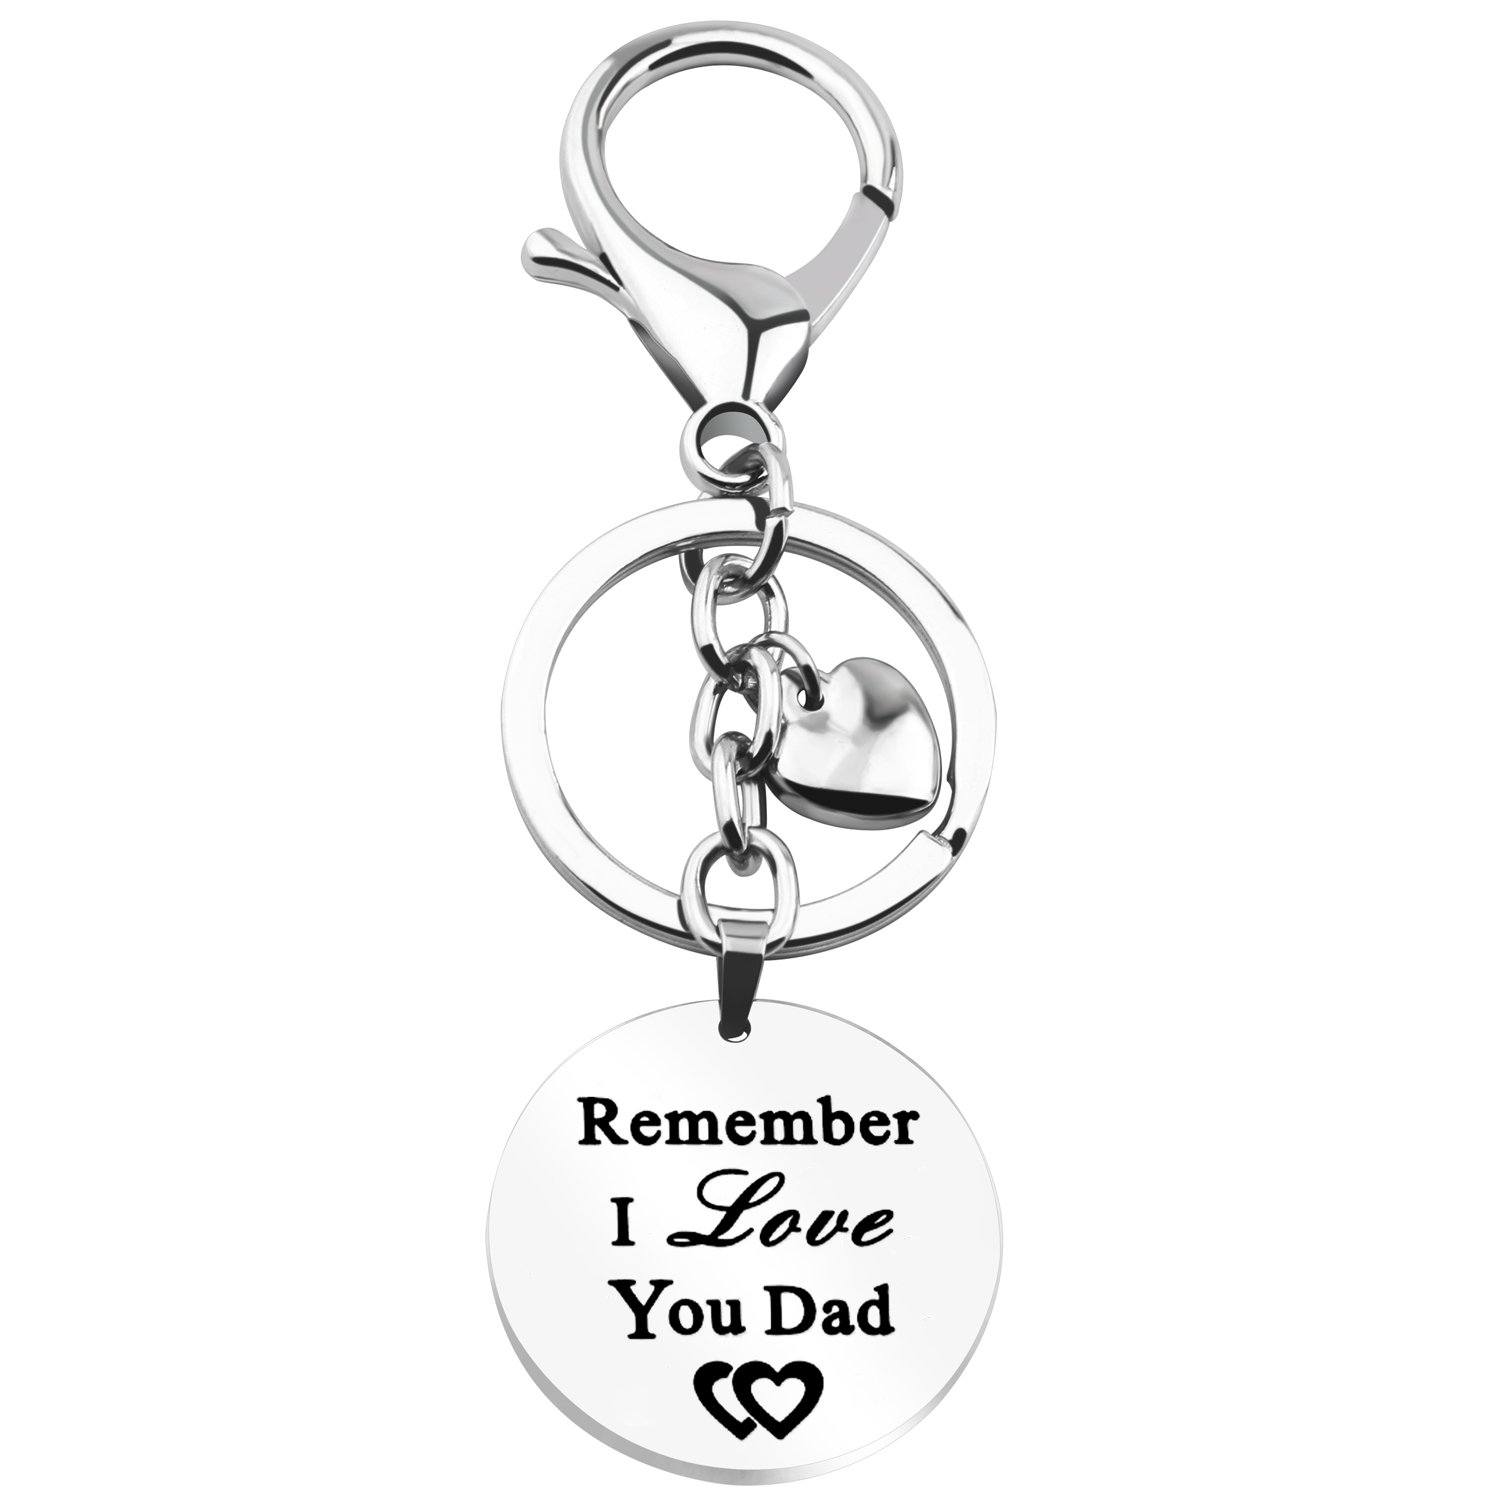 Gzrlyf Remember I Love You Mom Dad Bracelet Keychain Engraved Words Jewelry Inspirational Gift Parents Gift (Remember I love you dad keychain)